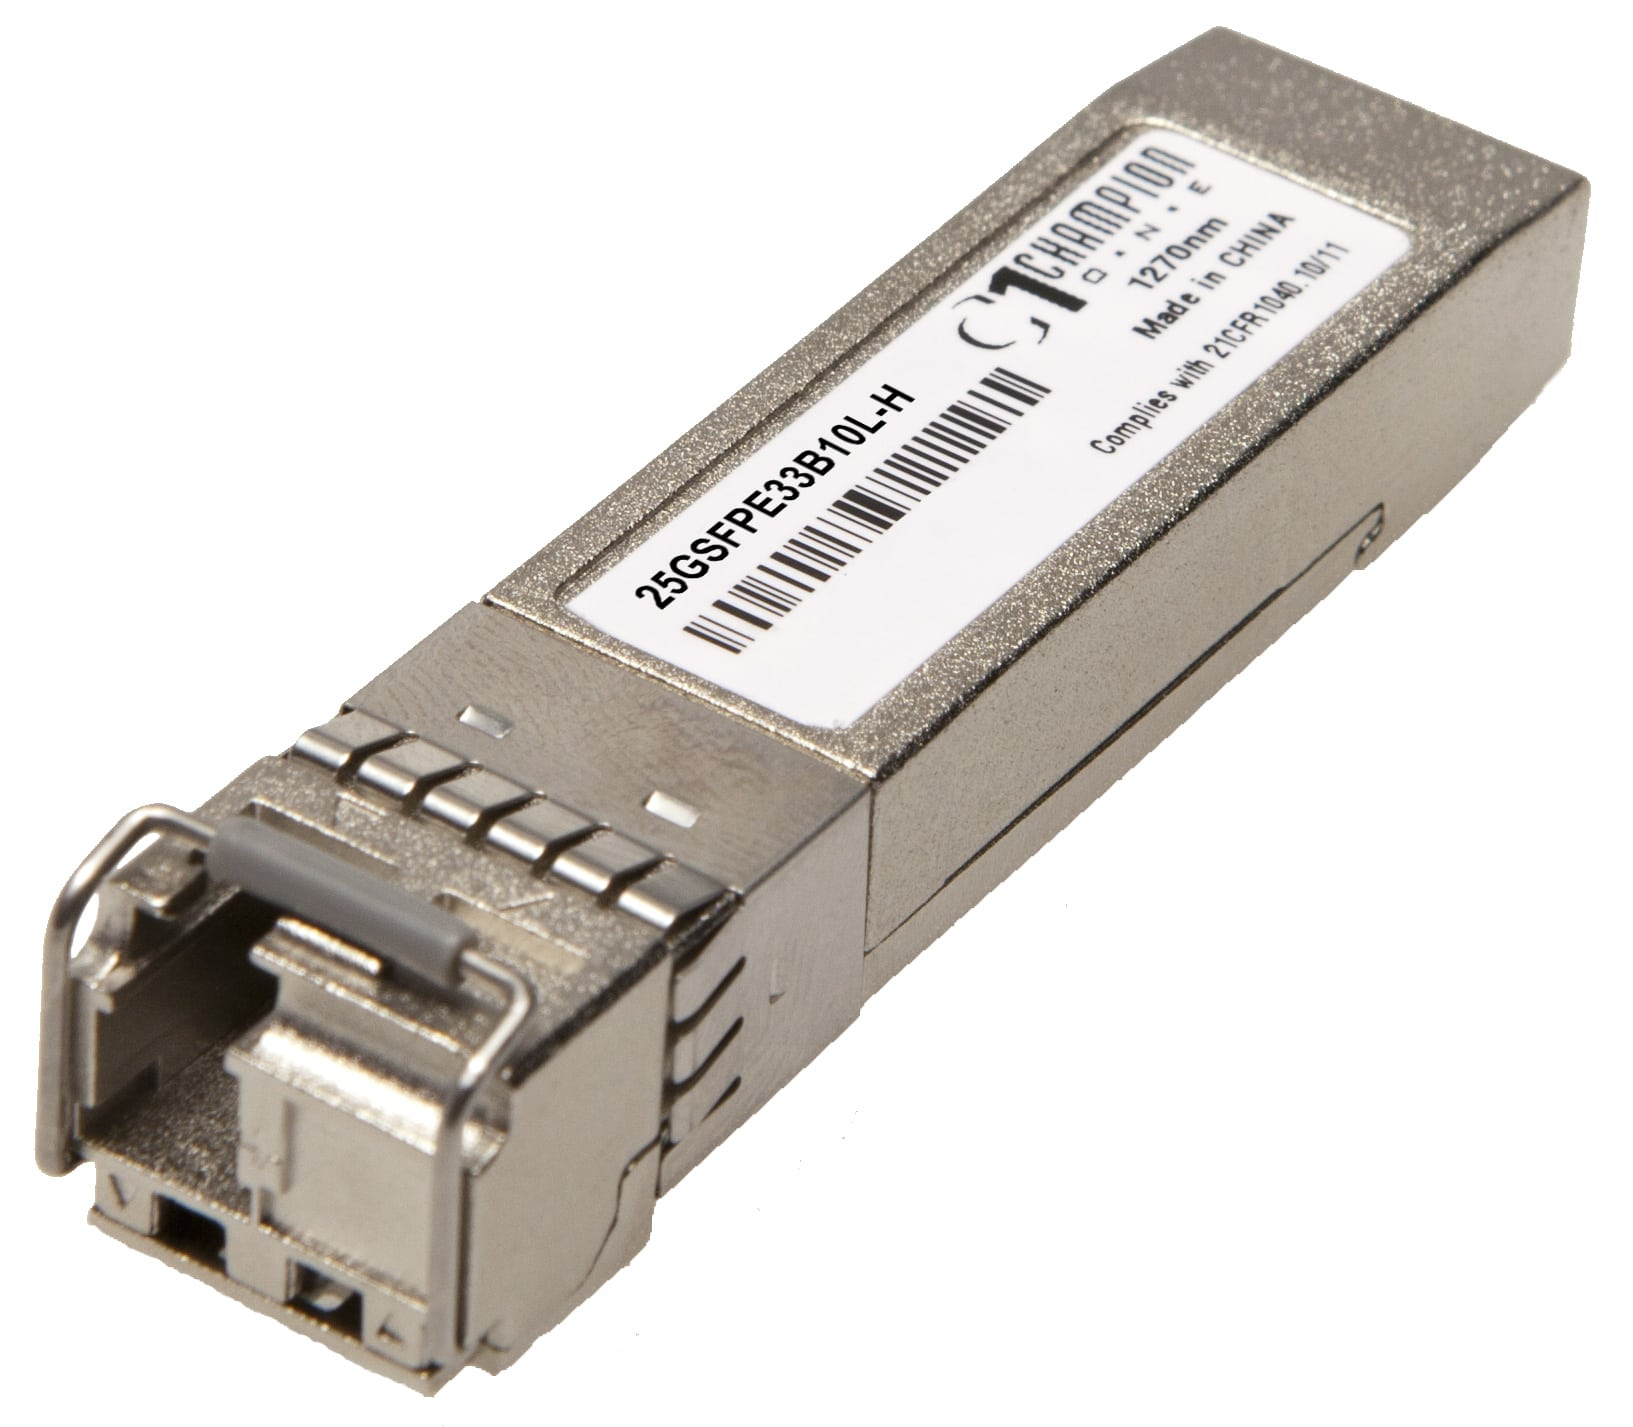 Single-Fiber 25GBASE-LR SFP28 SMF 10km temp-hardened 1330Tx/1270Rx